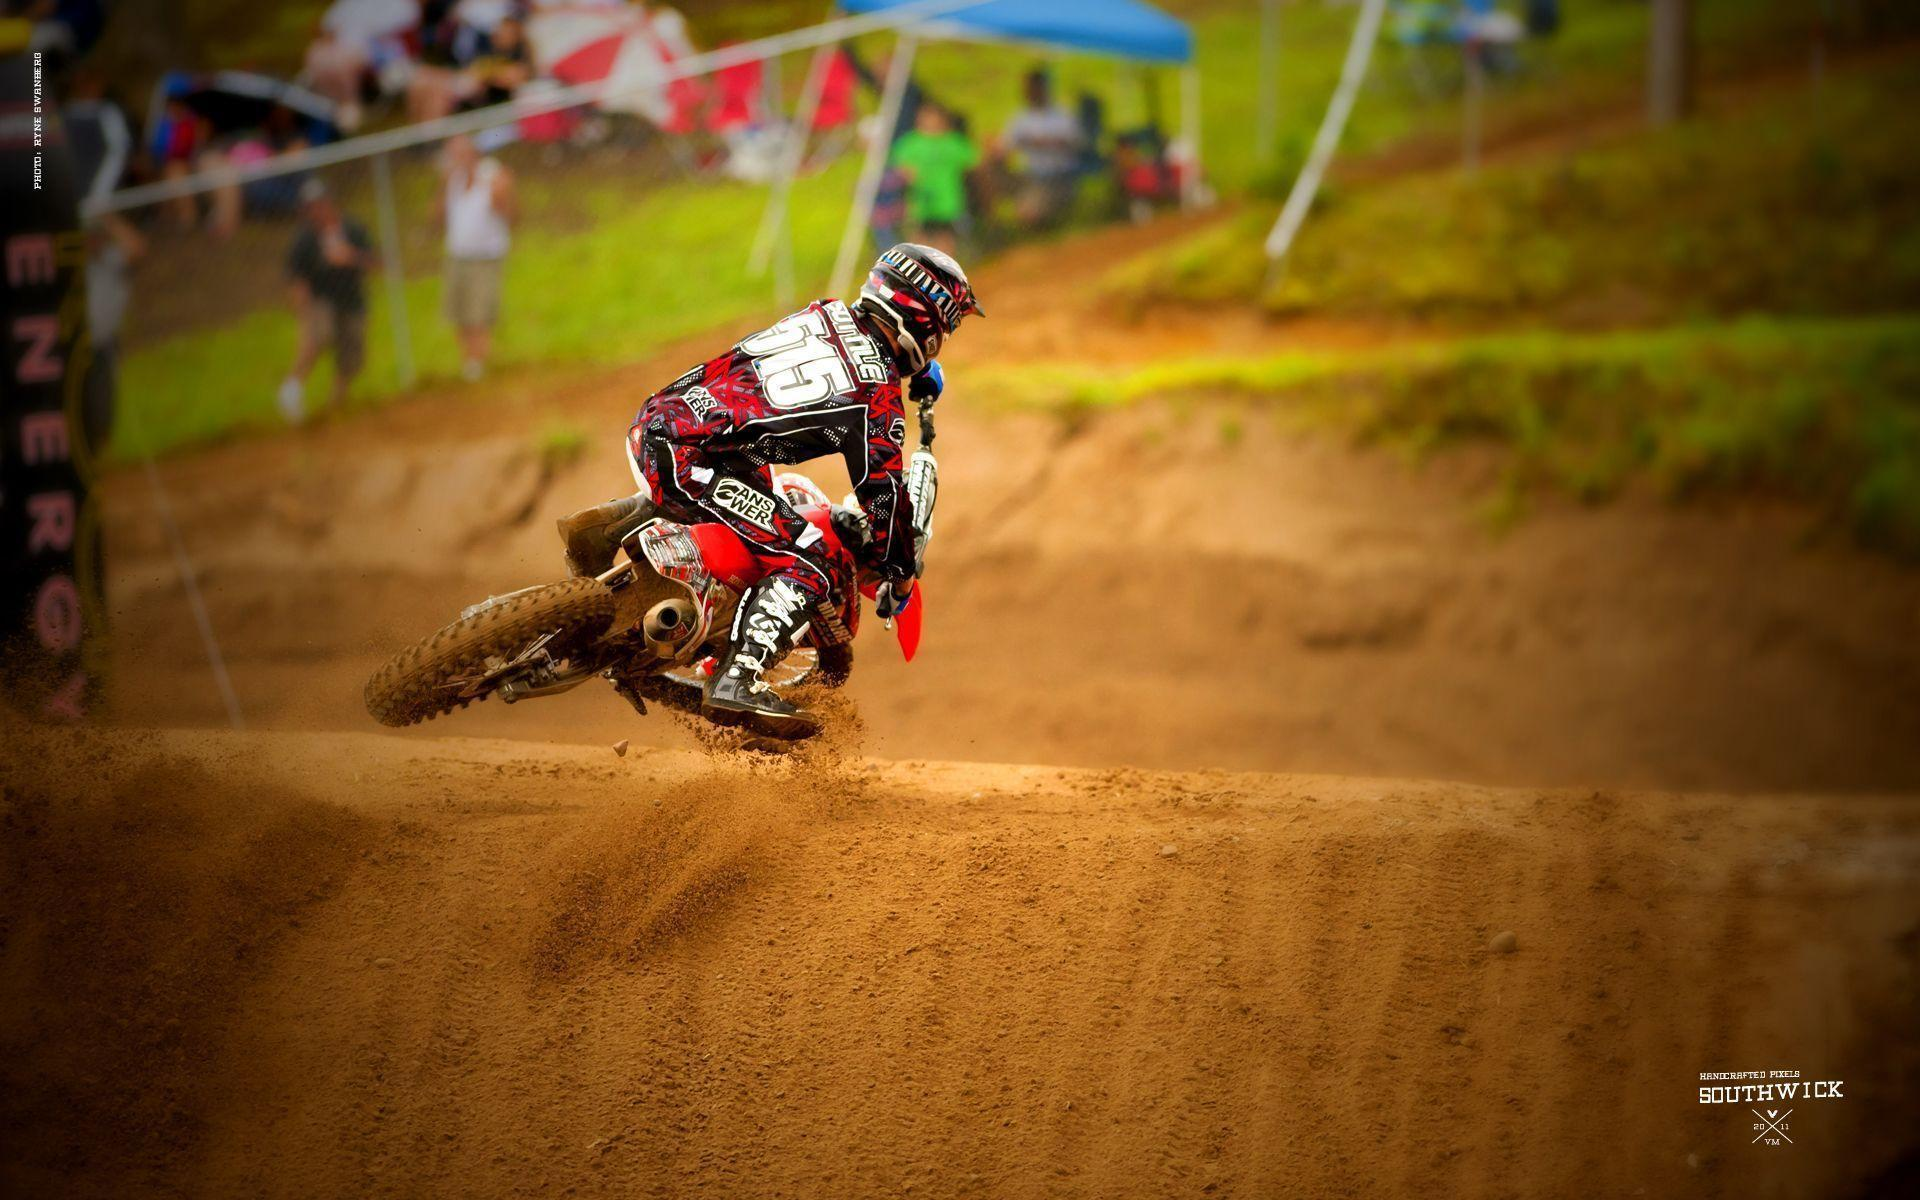 Wallpapers Collection «Motocross